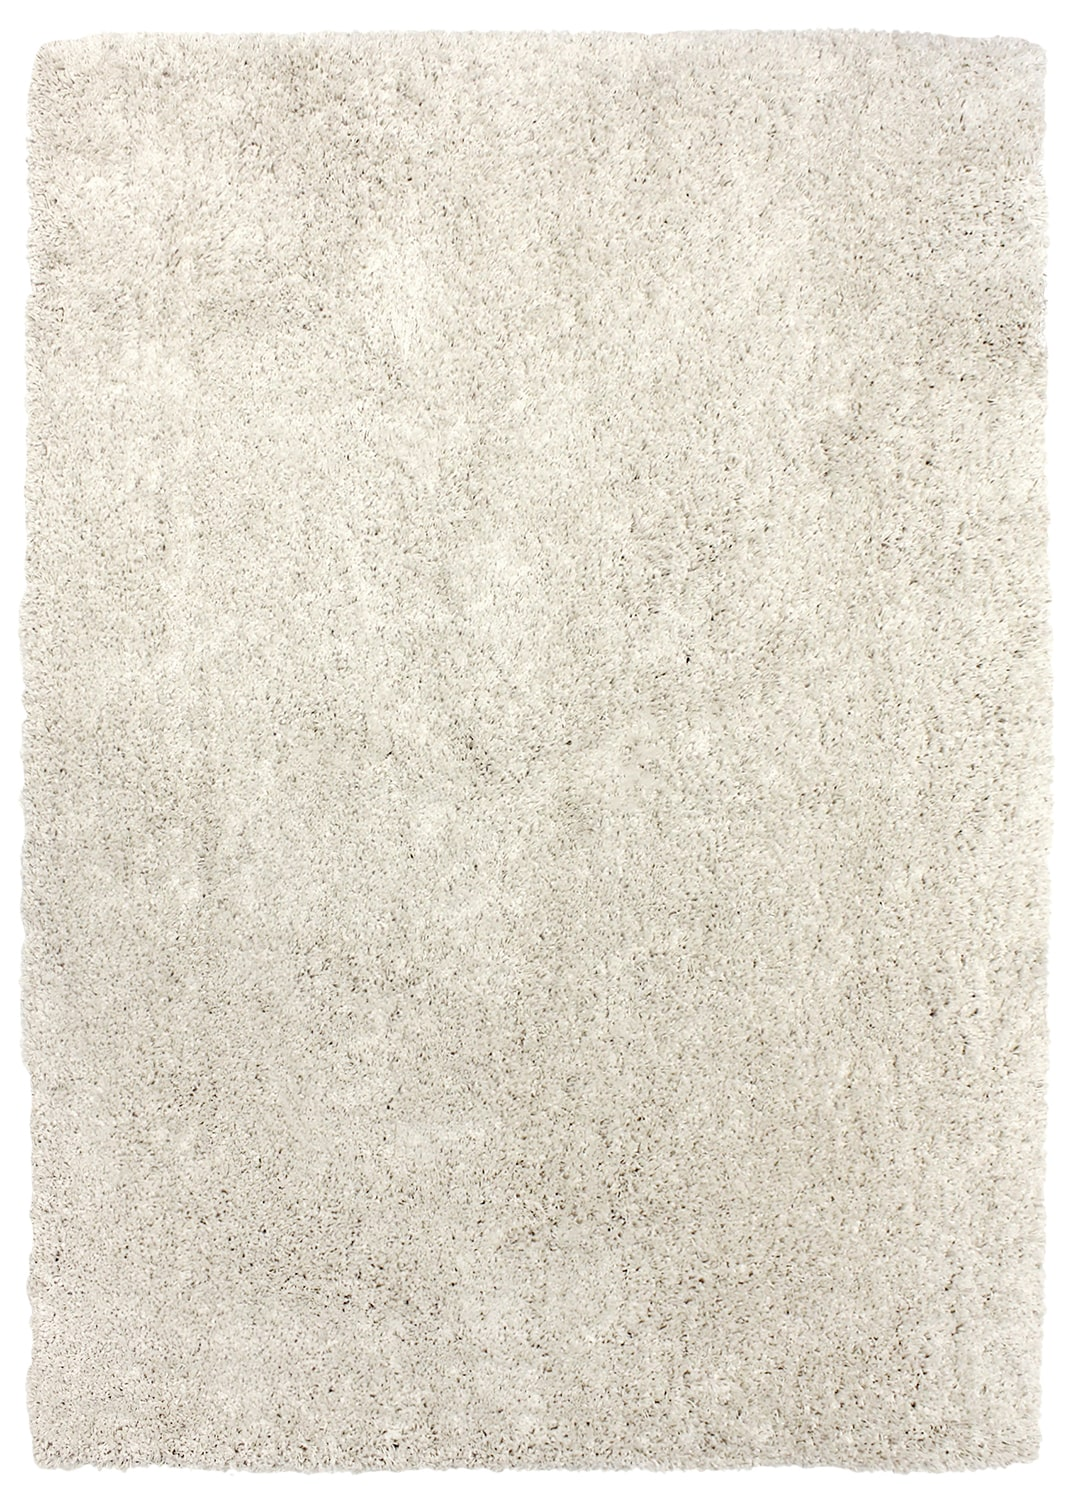 Loft Off White Shag Area Rug 5 X 8 The Brick